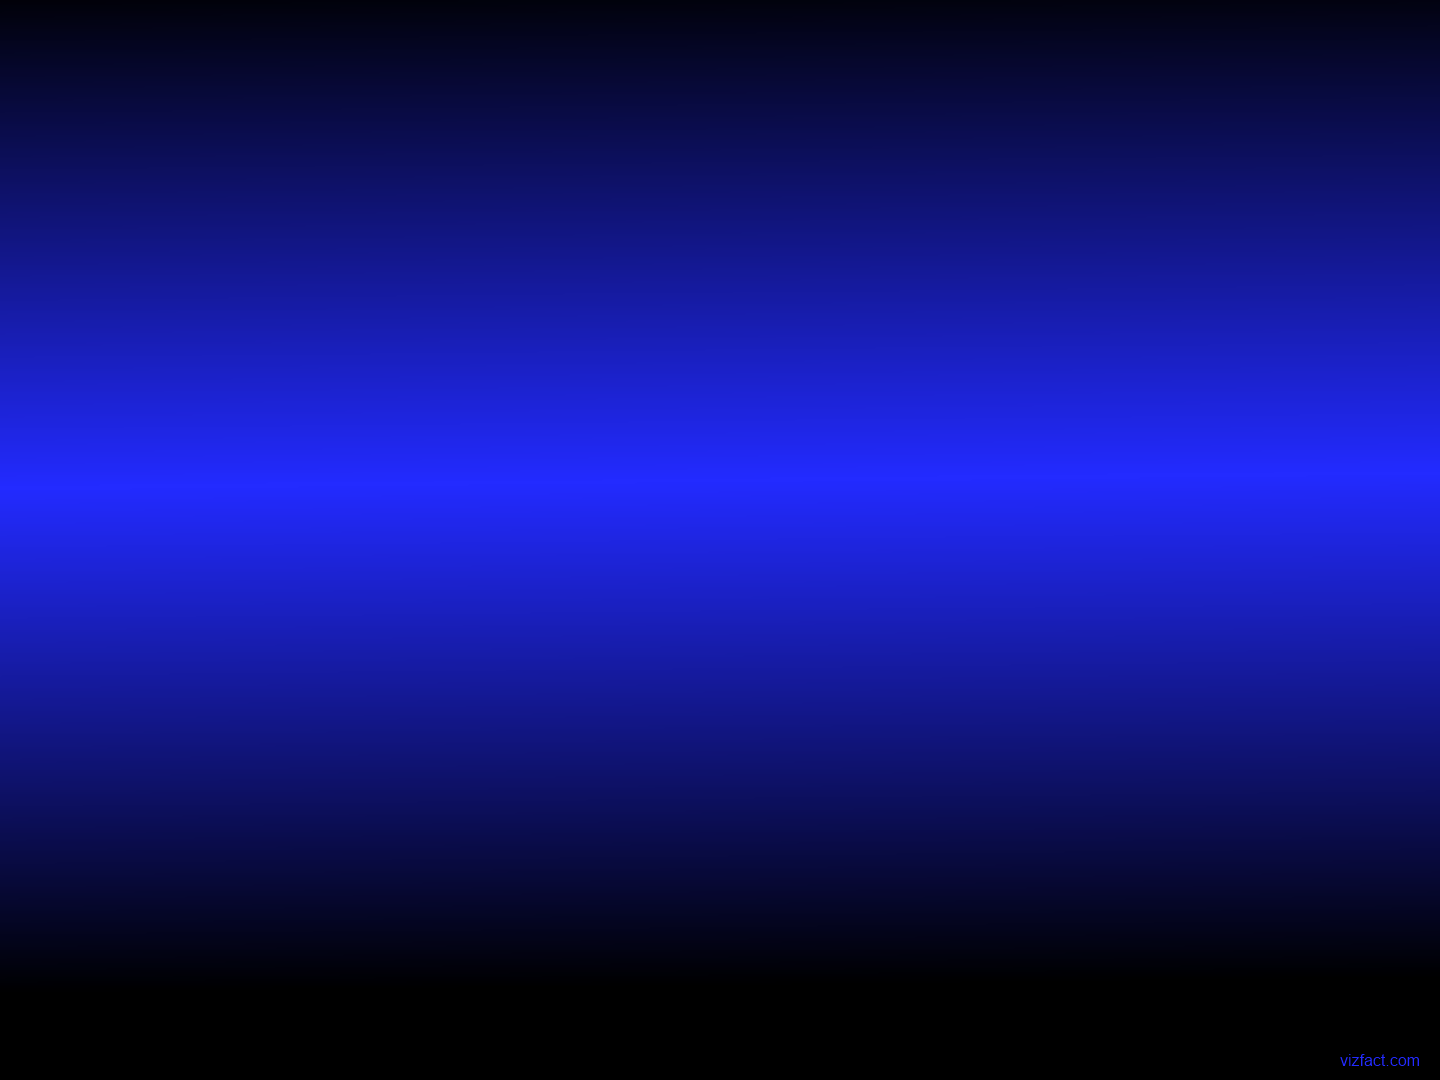 background wallpaper blue black gradient vizfact dot com blue black 1440x1080